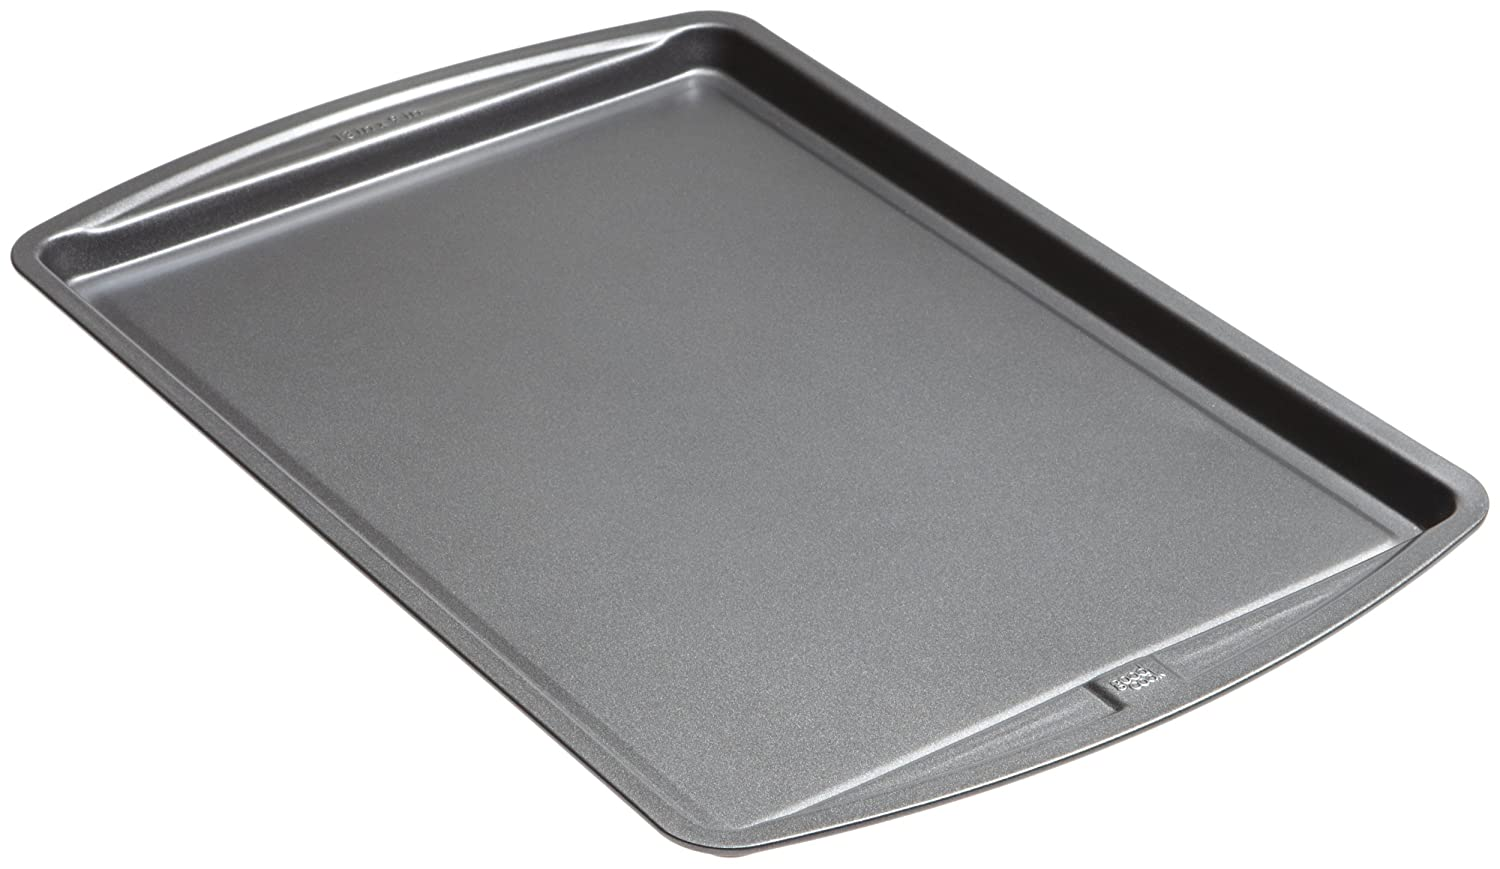 Good Cook 13 x 9 Cookie Sheet 04020